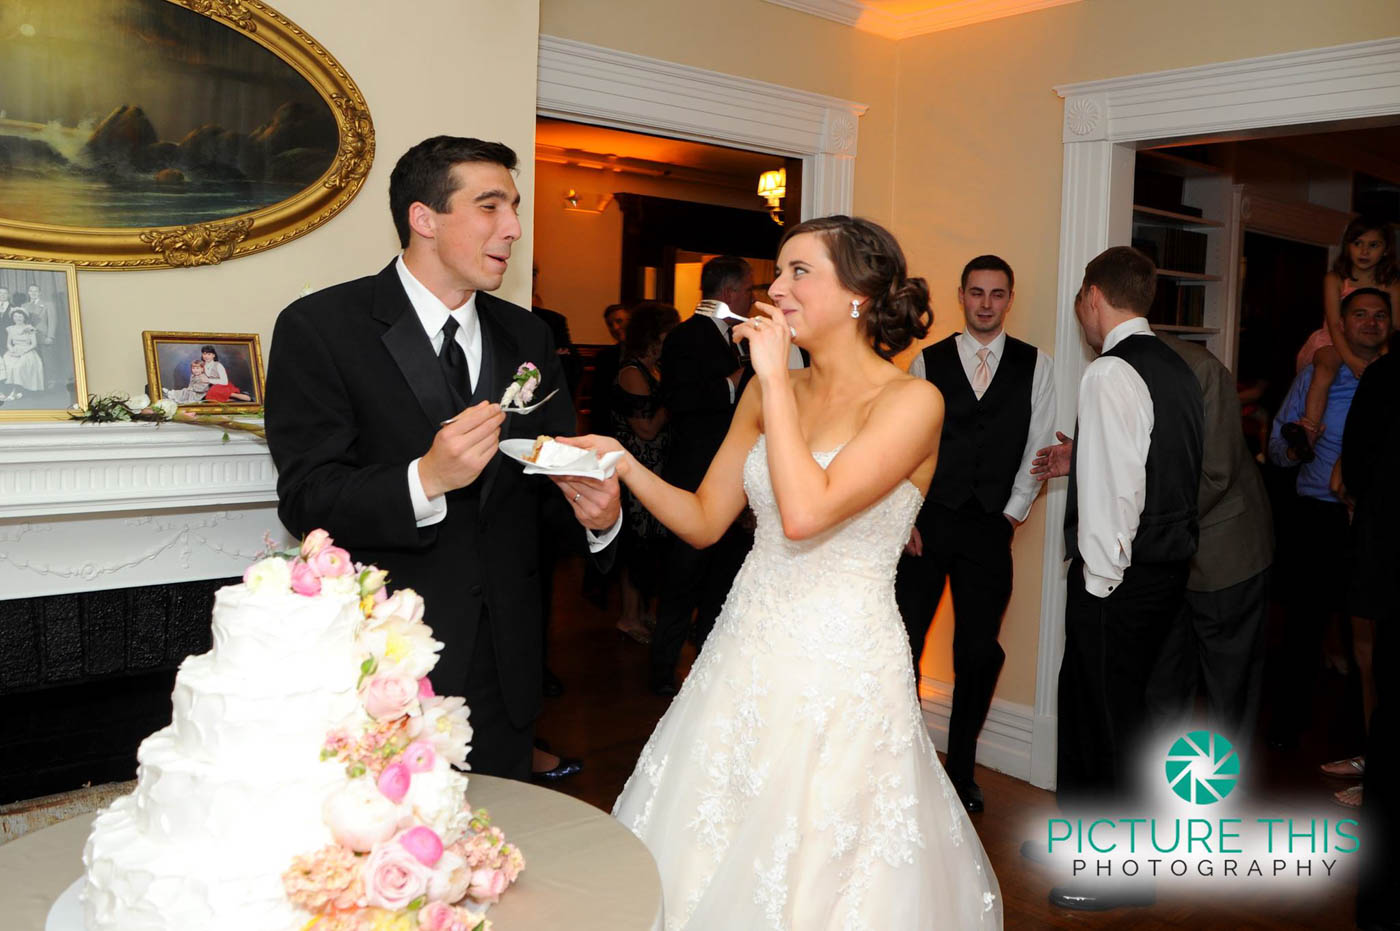 alunmi-bride-groom-laughing-sharing-cake